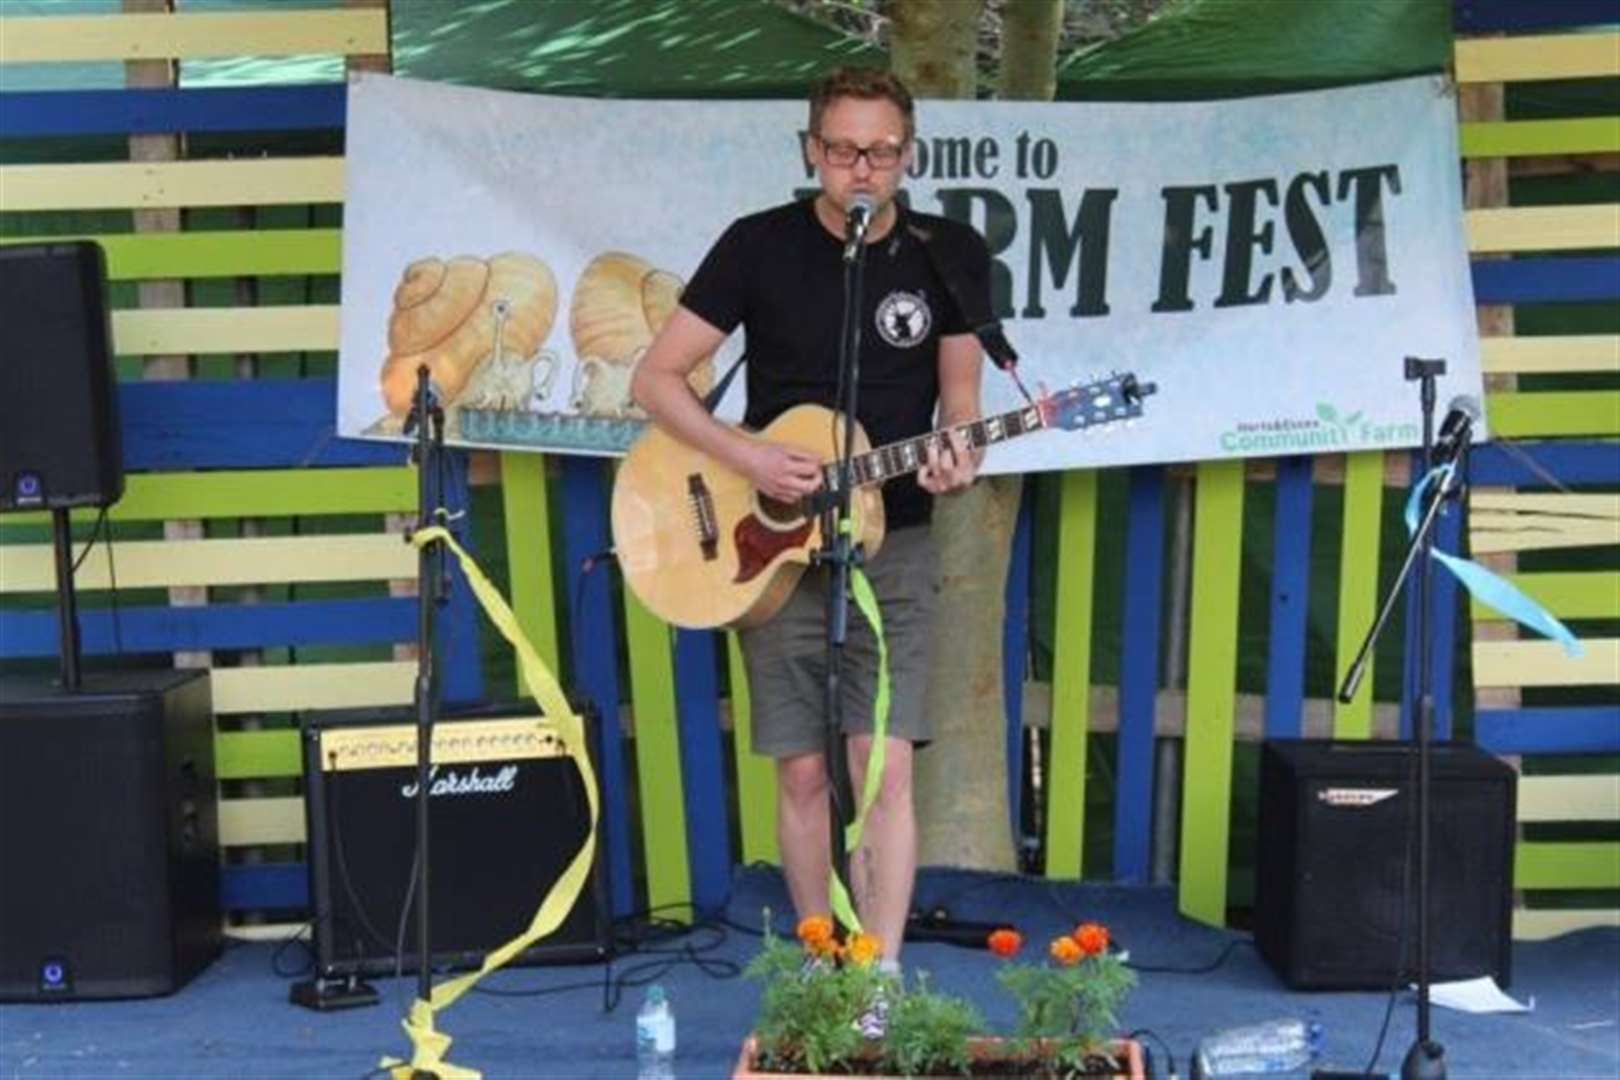 Enjoy the good life at Herts and Essex Community Farm's music festival